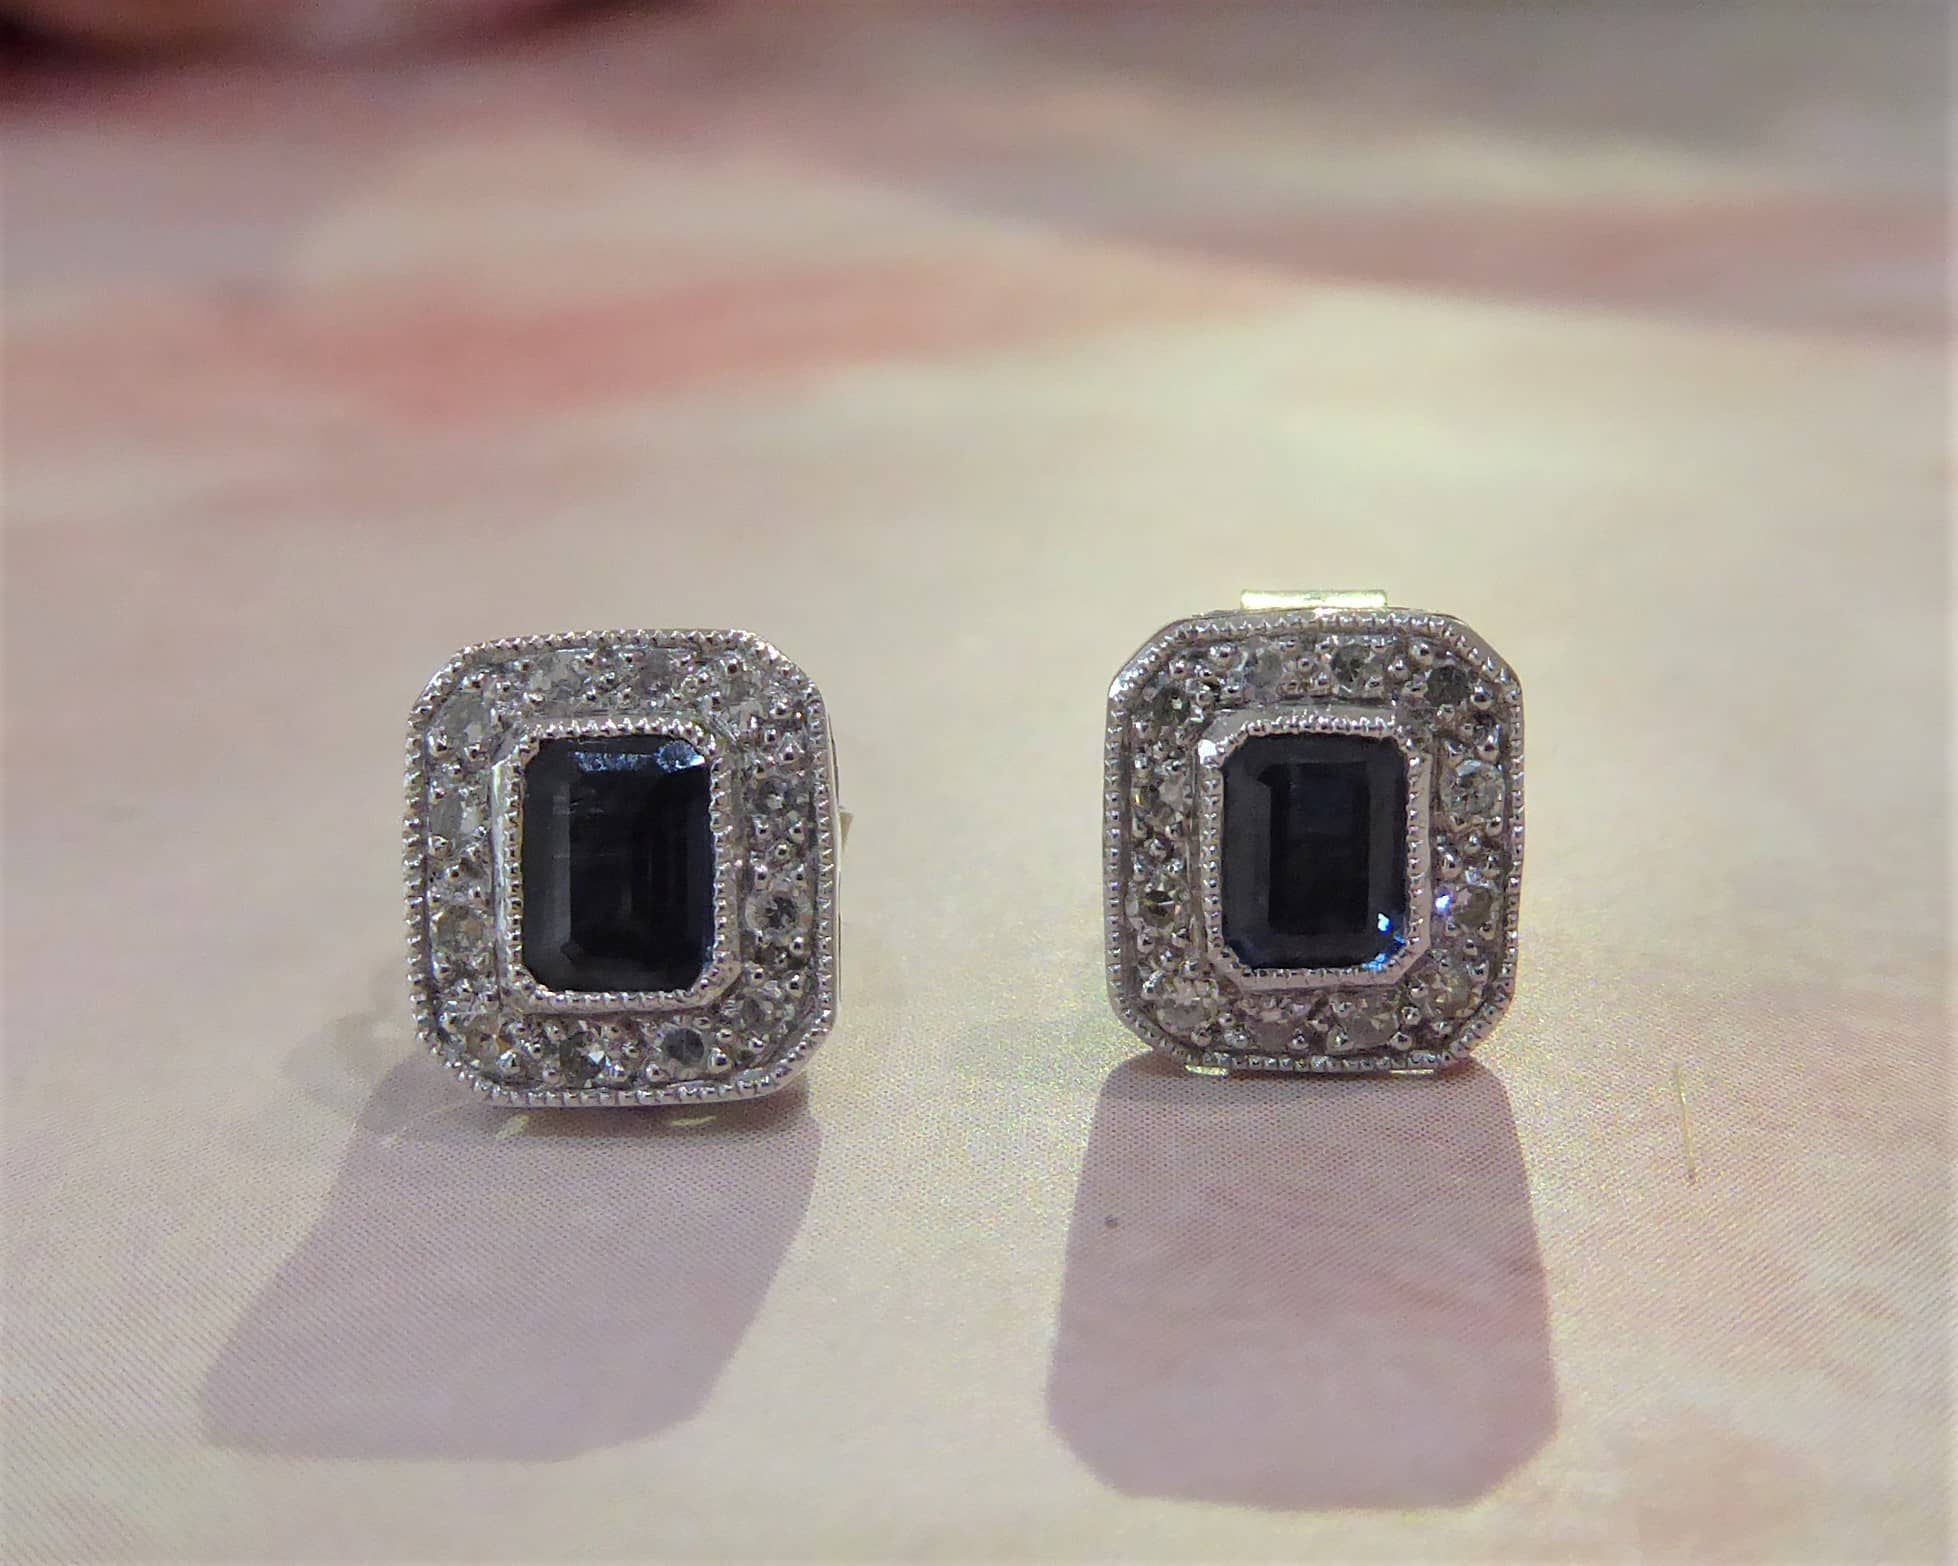 9ct White Gold Diamond And Sapphire Art Deco Style Stud Earrings Aladdin S Cave Jewellery